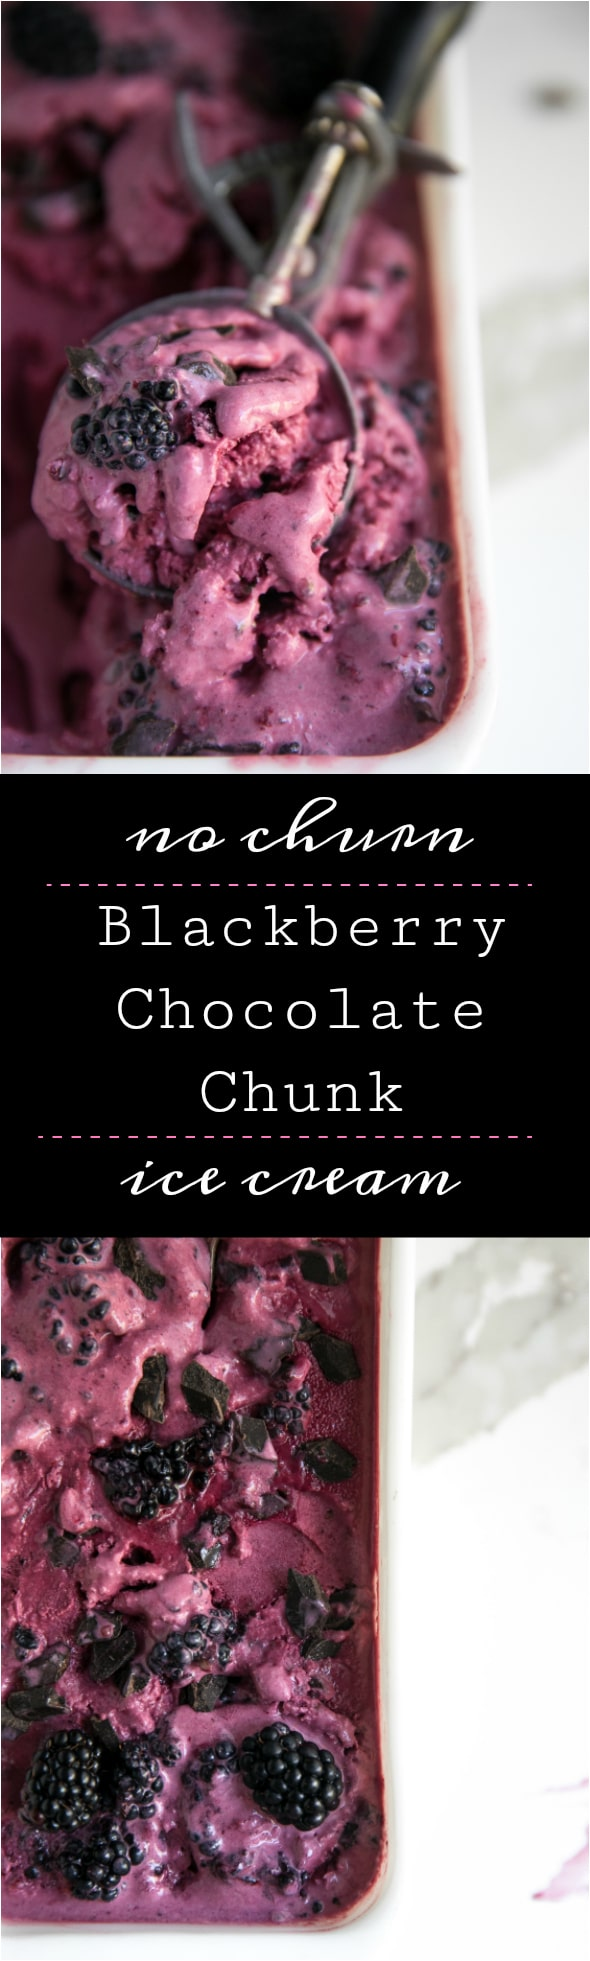 No Churn Blackberry and Chocolate Chunk Ice Cream #icecream #blackberry #homemade #dessert #chocolate